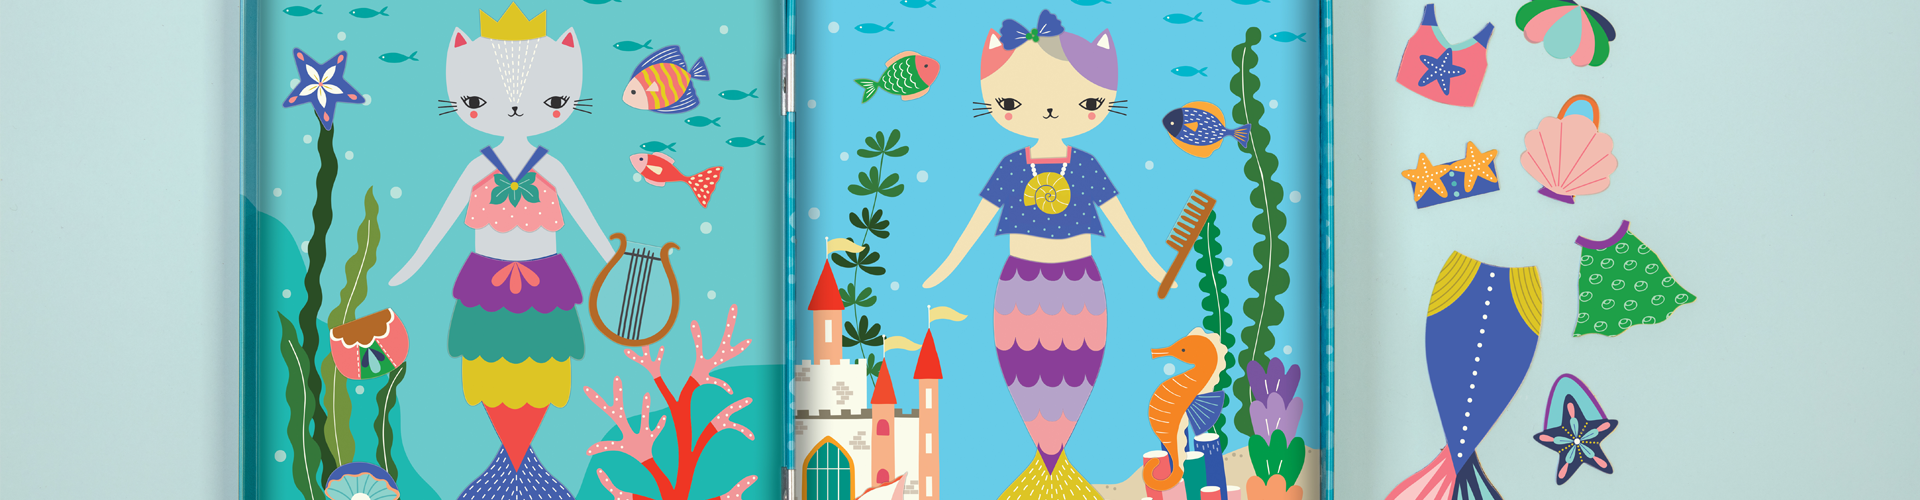 Under the sea collection from Mudpuppy